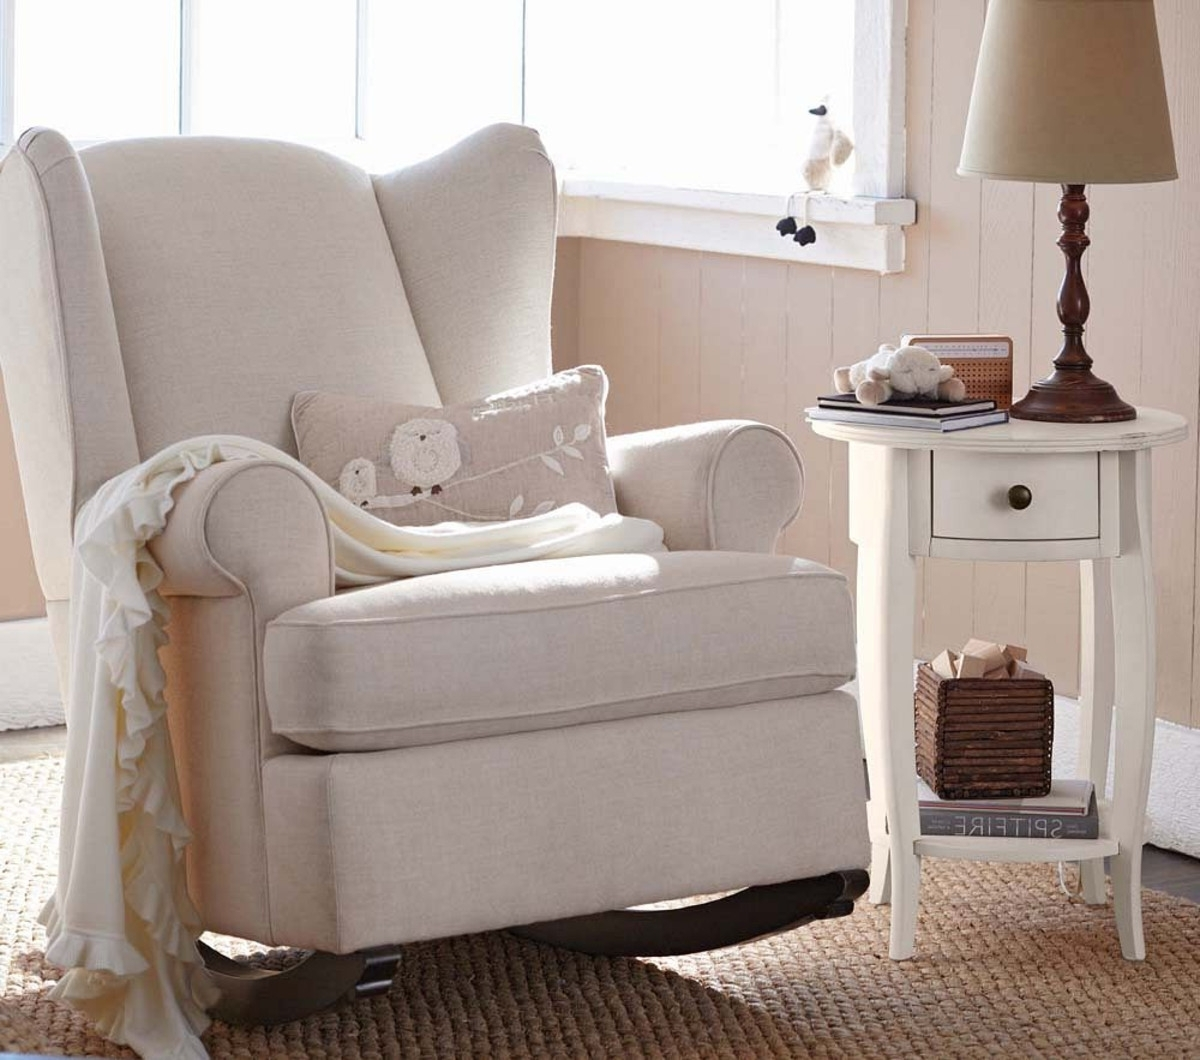 Ideal Modern Rocking Chair Nursery — Indoor & Outdoor Decor In Most Current Rocking Chairs For Nursery (View 18 of 20)